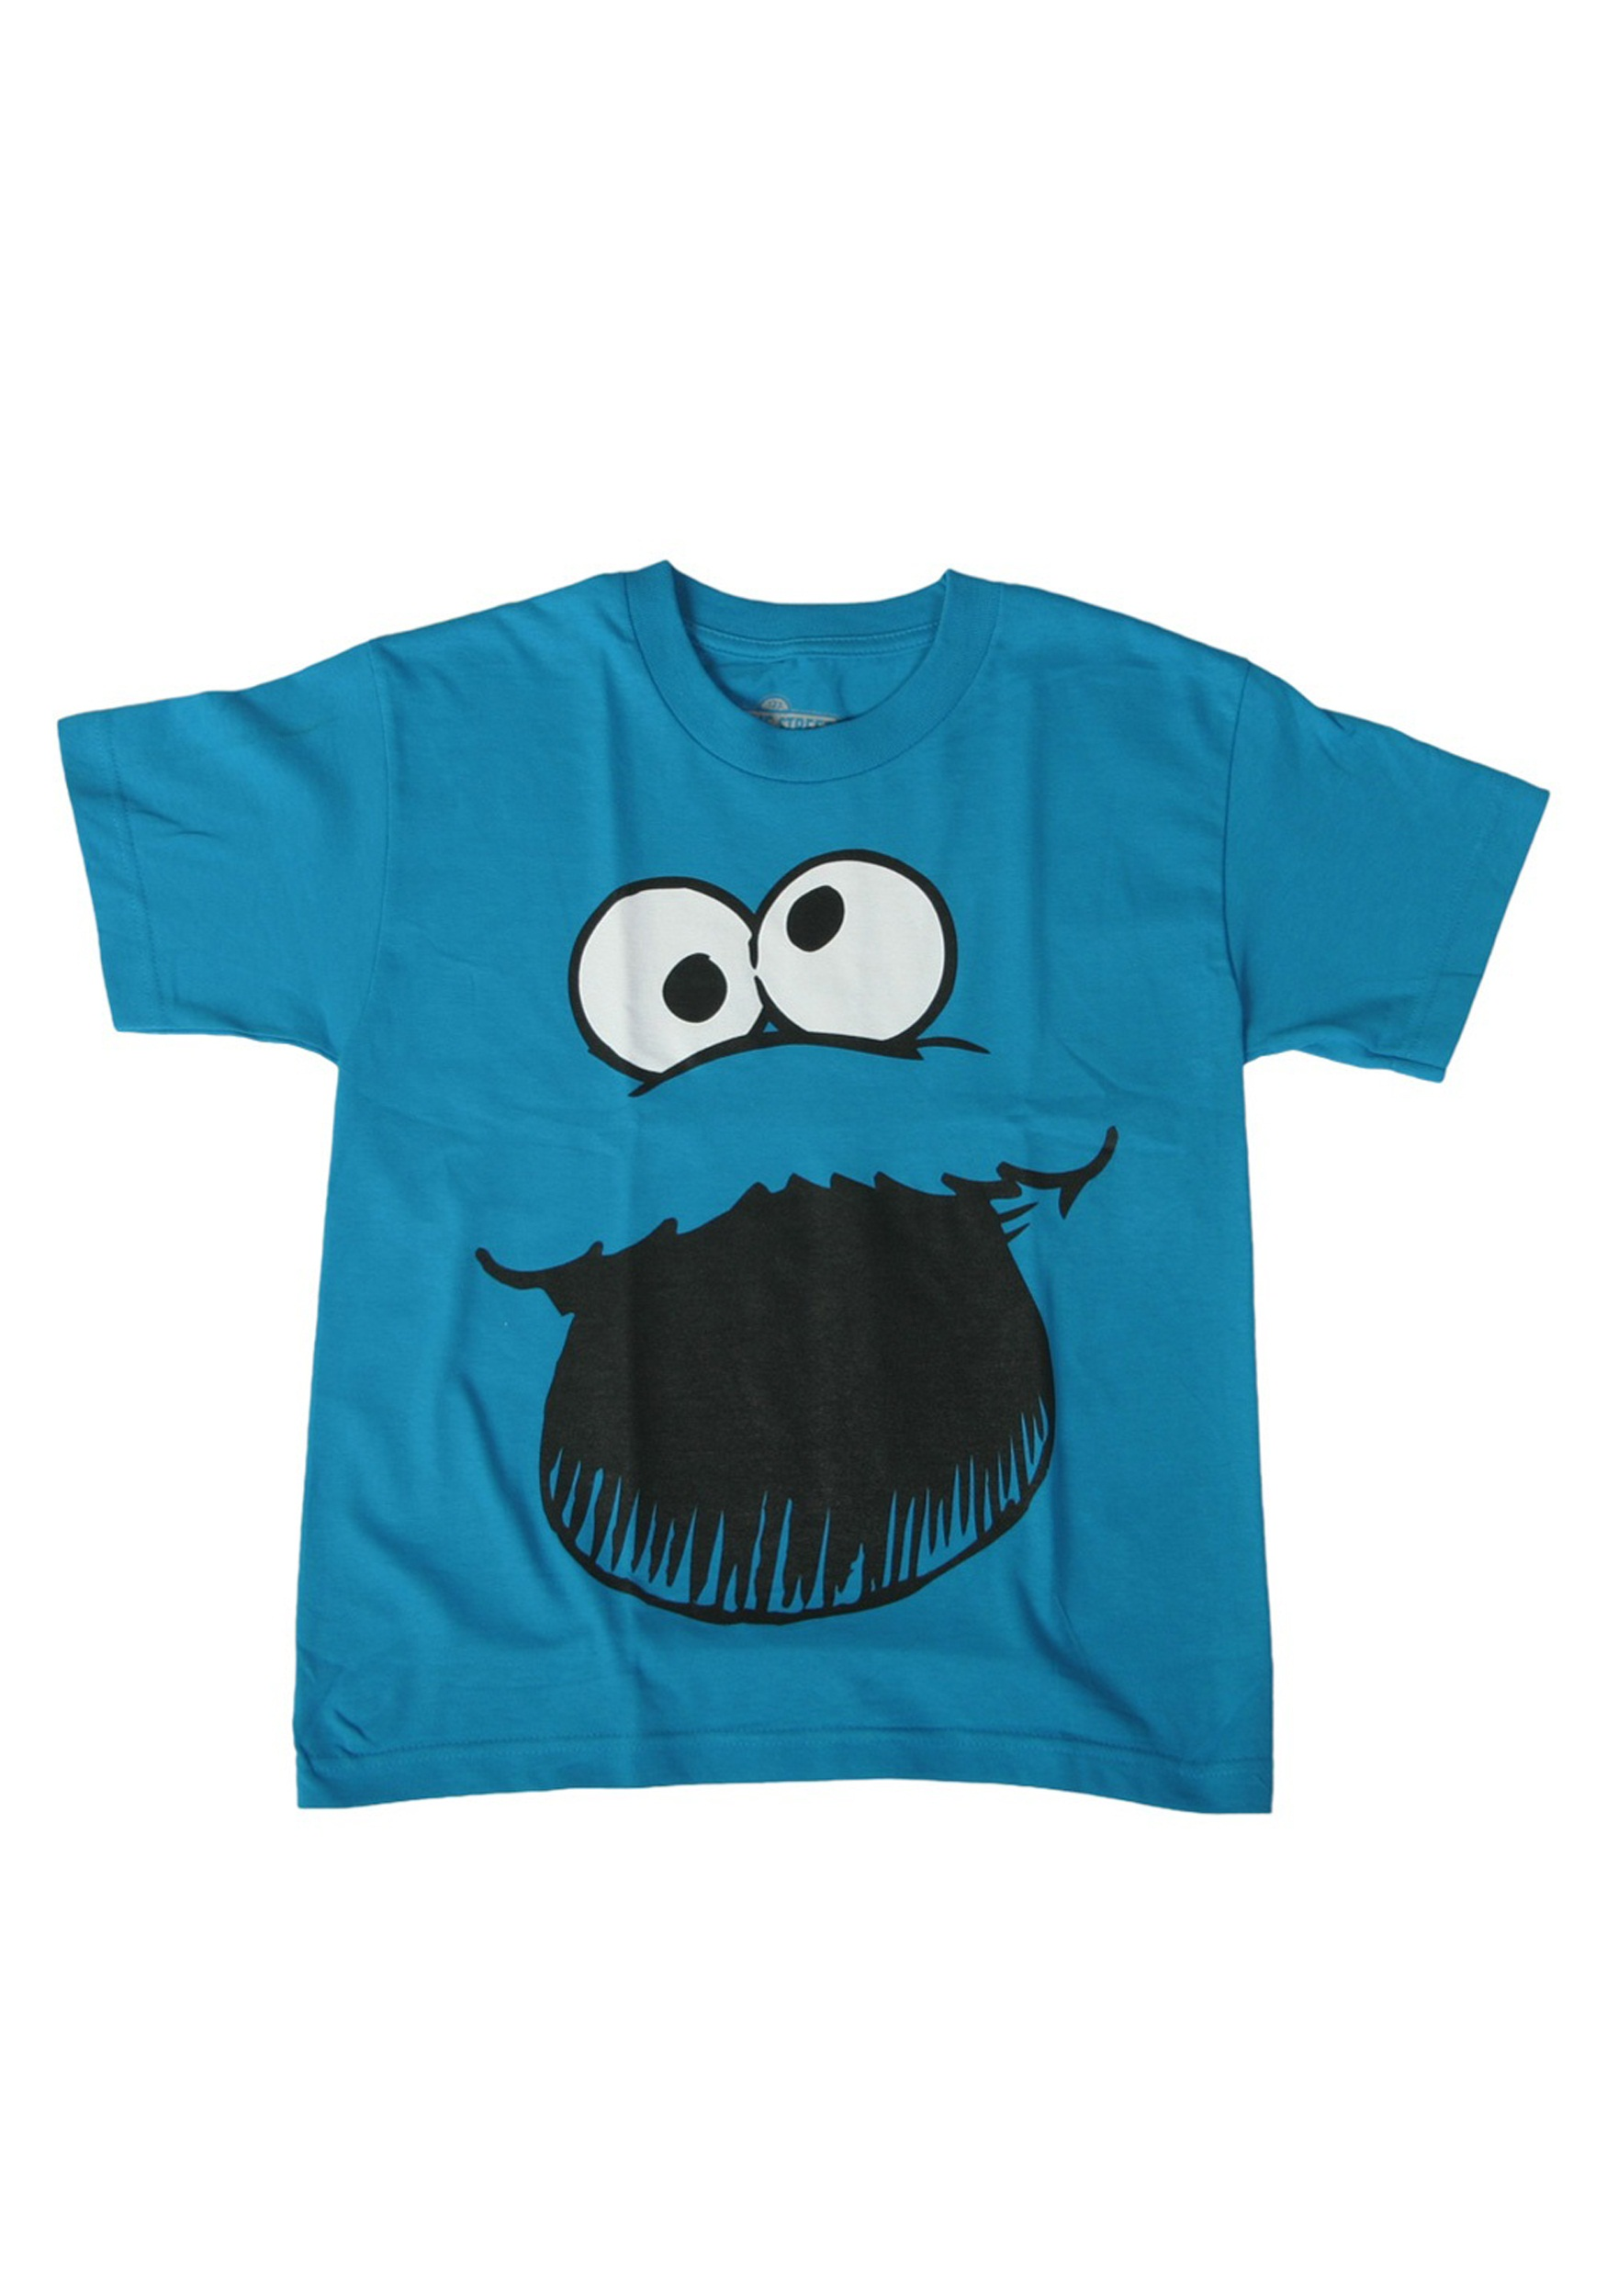 Cookie monster adult t shirt nude galleries